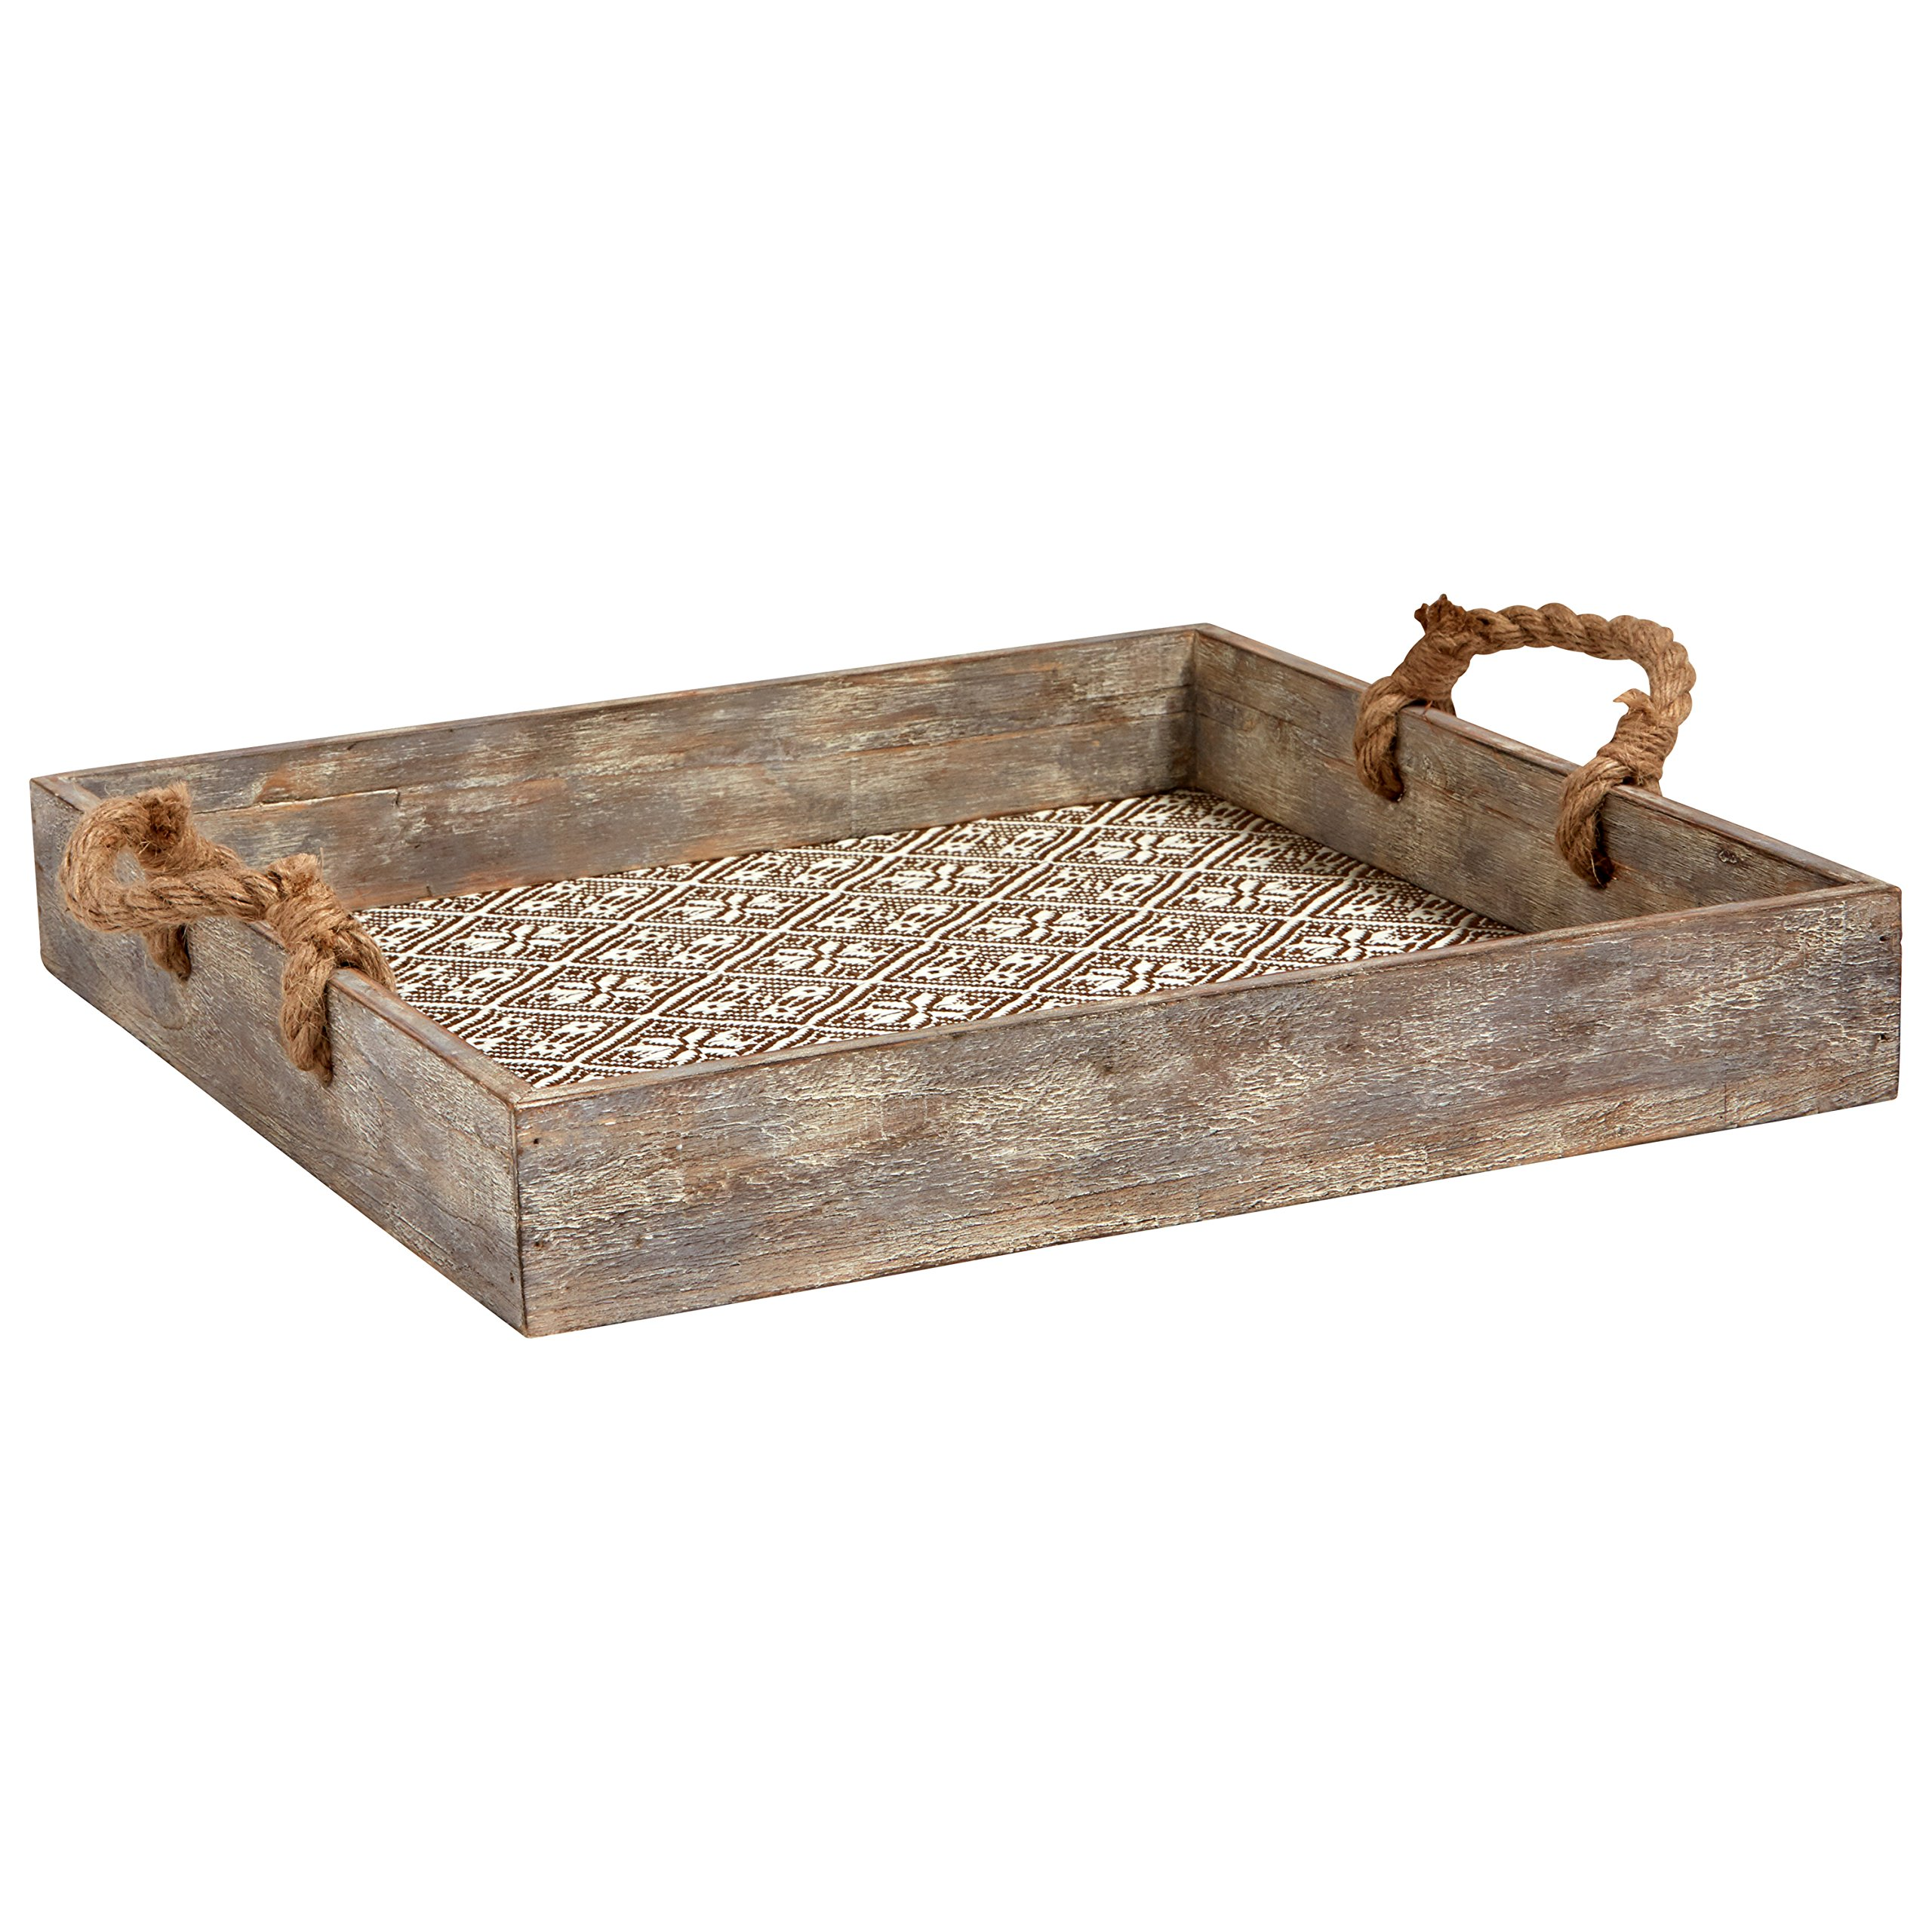 Stone & Beam Vintage Farmhouse Wood and Rope Tray, 15.75''W, White by Stone & Beam (Image #1)